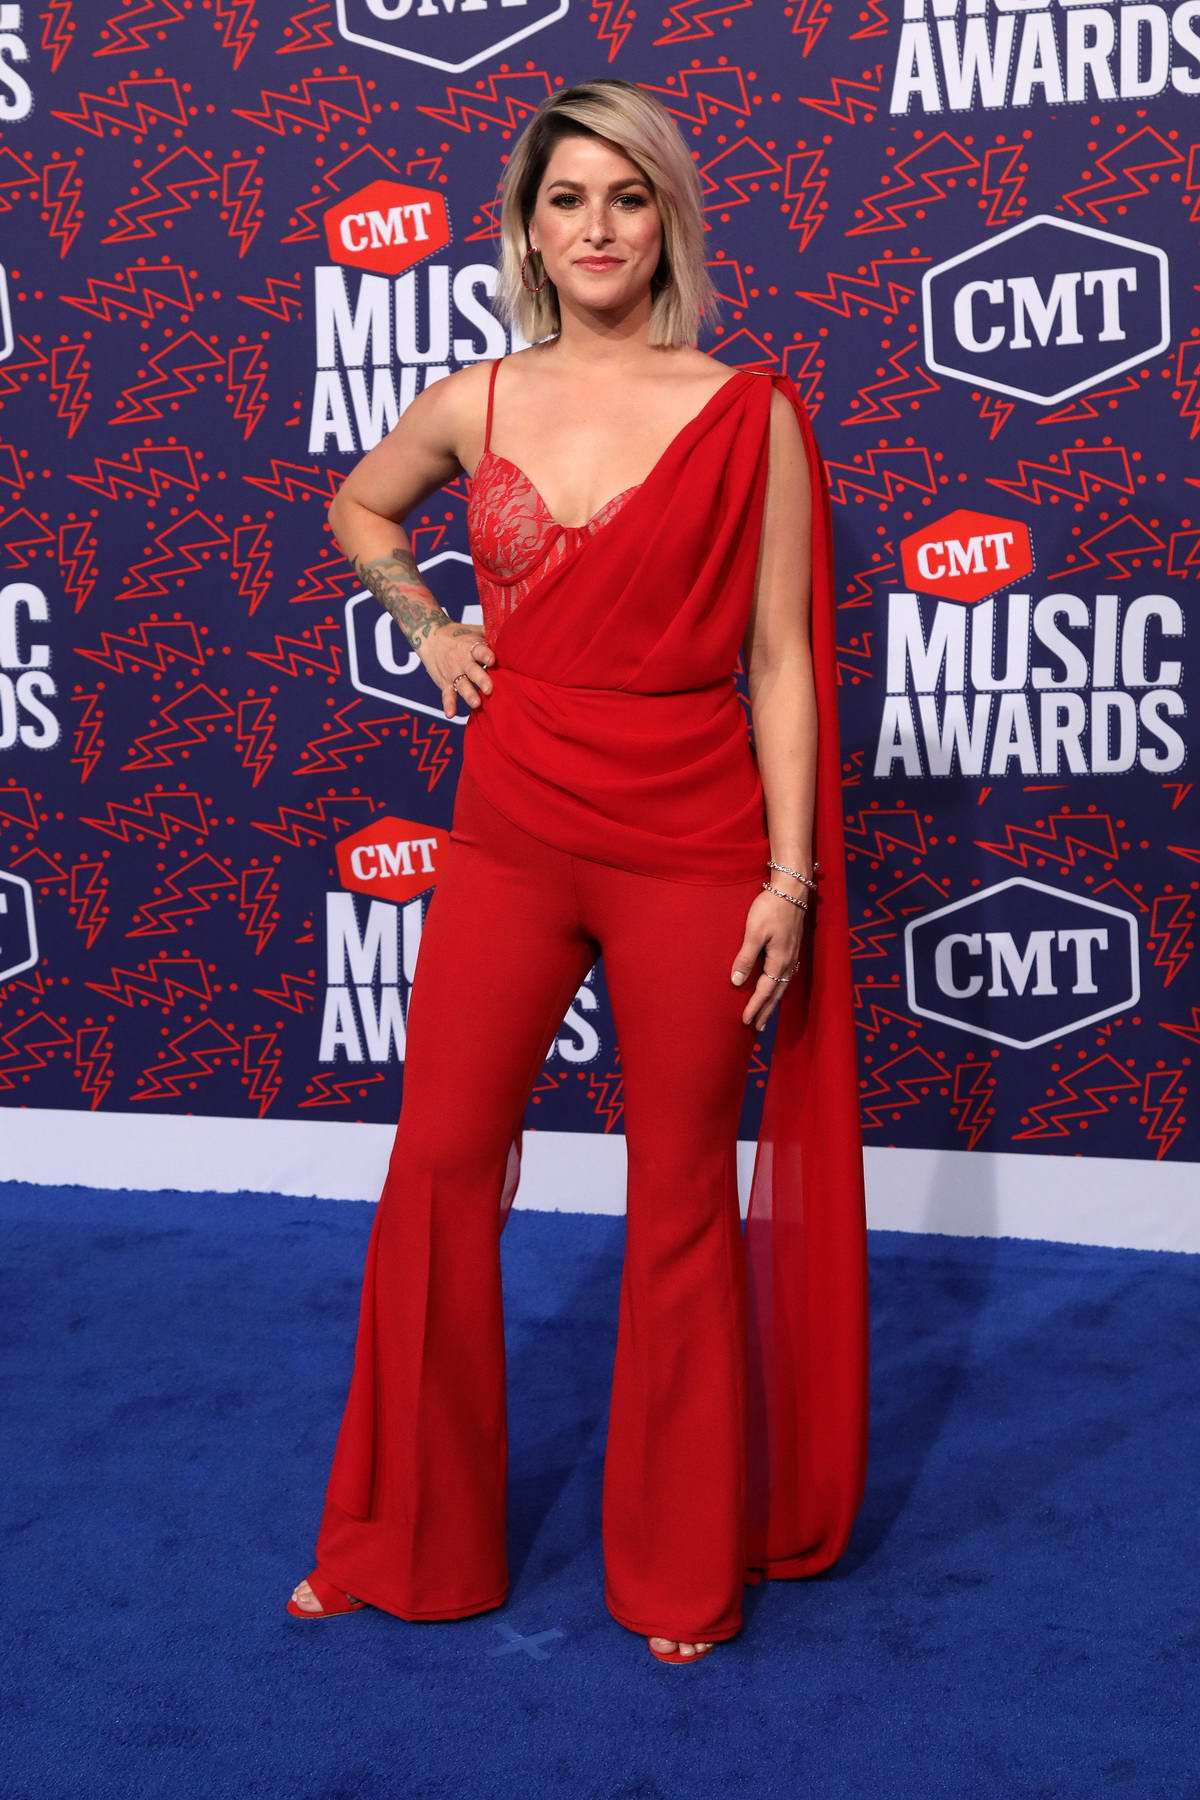 Cassadee Pope attends the 2019 CMT Music Awards at Bridgestone Arena in Nashville, TN